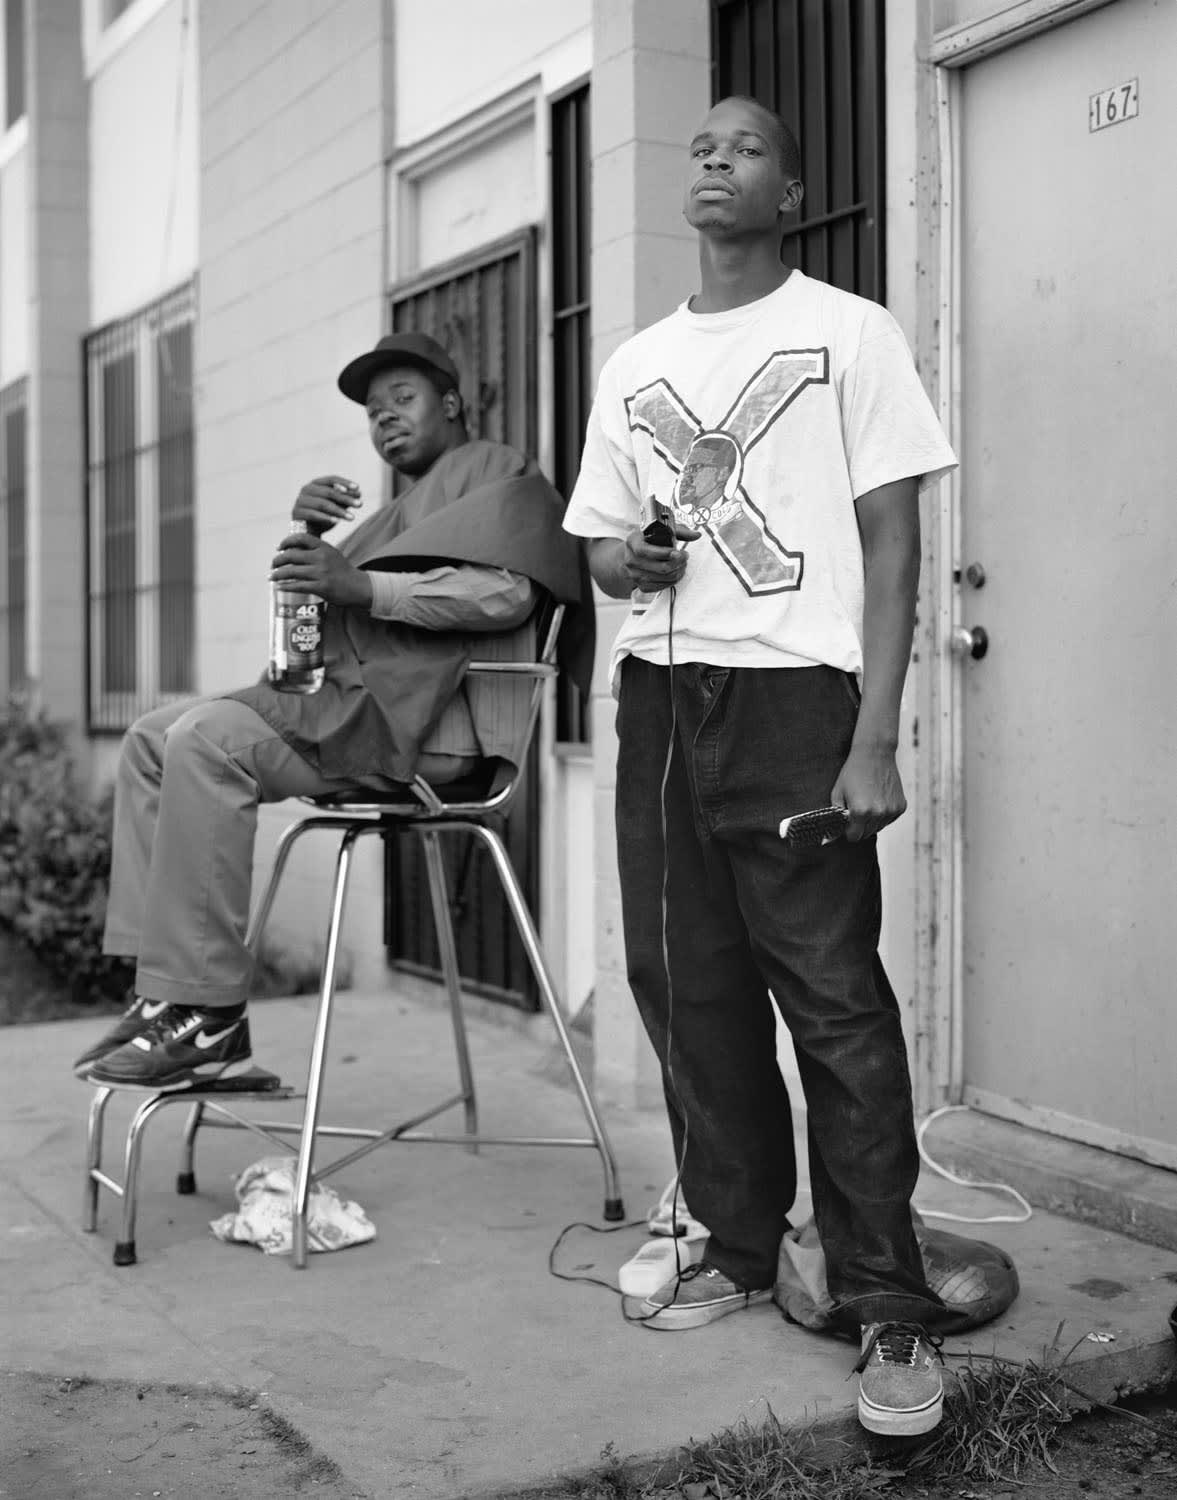 Antloc and Mastermind, 1993 From the series: Imperial Courts, 1993-2015